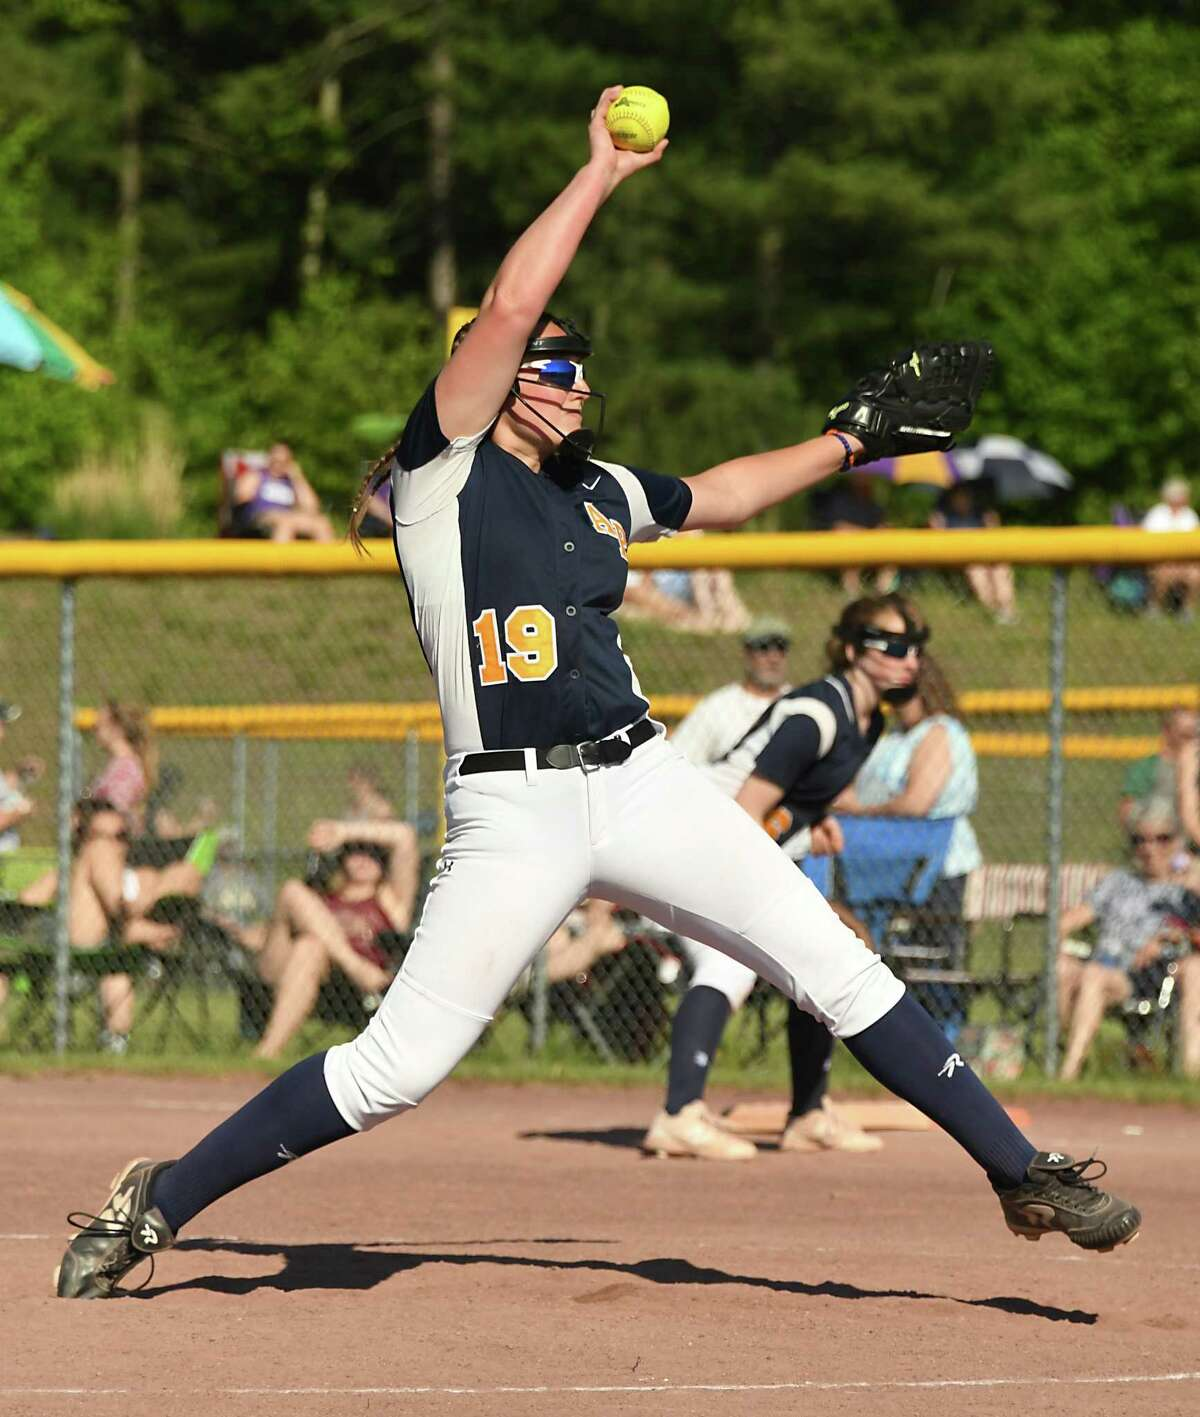 Averill Park pitcher Jadyn Lee throws the ball during the Class A softball final against South Glens Falls at the Luther Forest Complex on Wednesday, May 29, 2018 in Malta N.Y. (Lori Van Buren/Times Union)